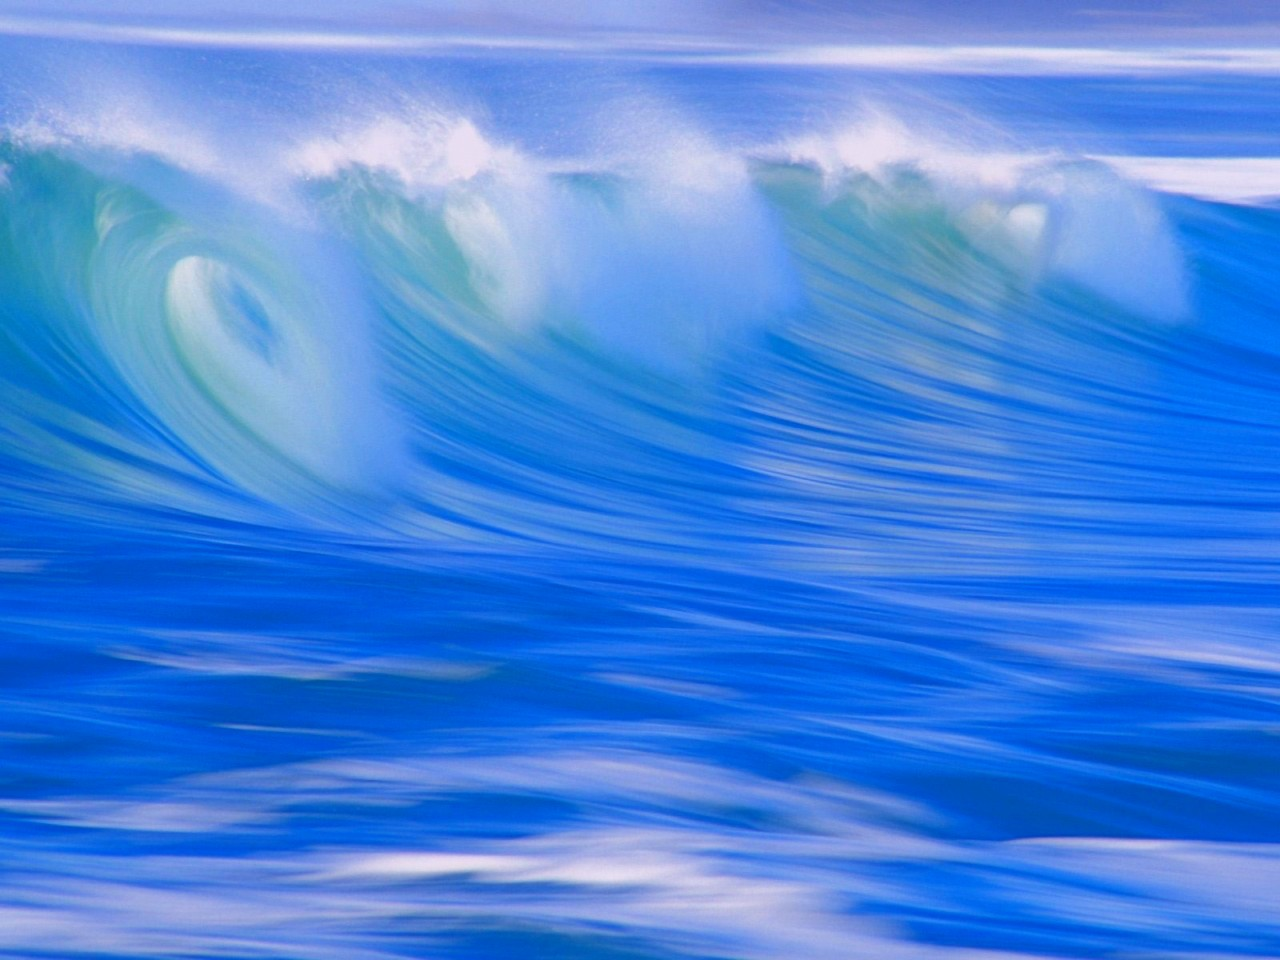 Blue Wave Wallpapers, Pictures, Images Pacific Ocean Waves